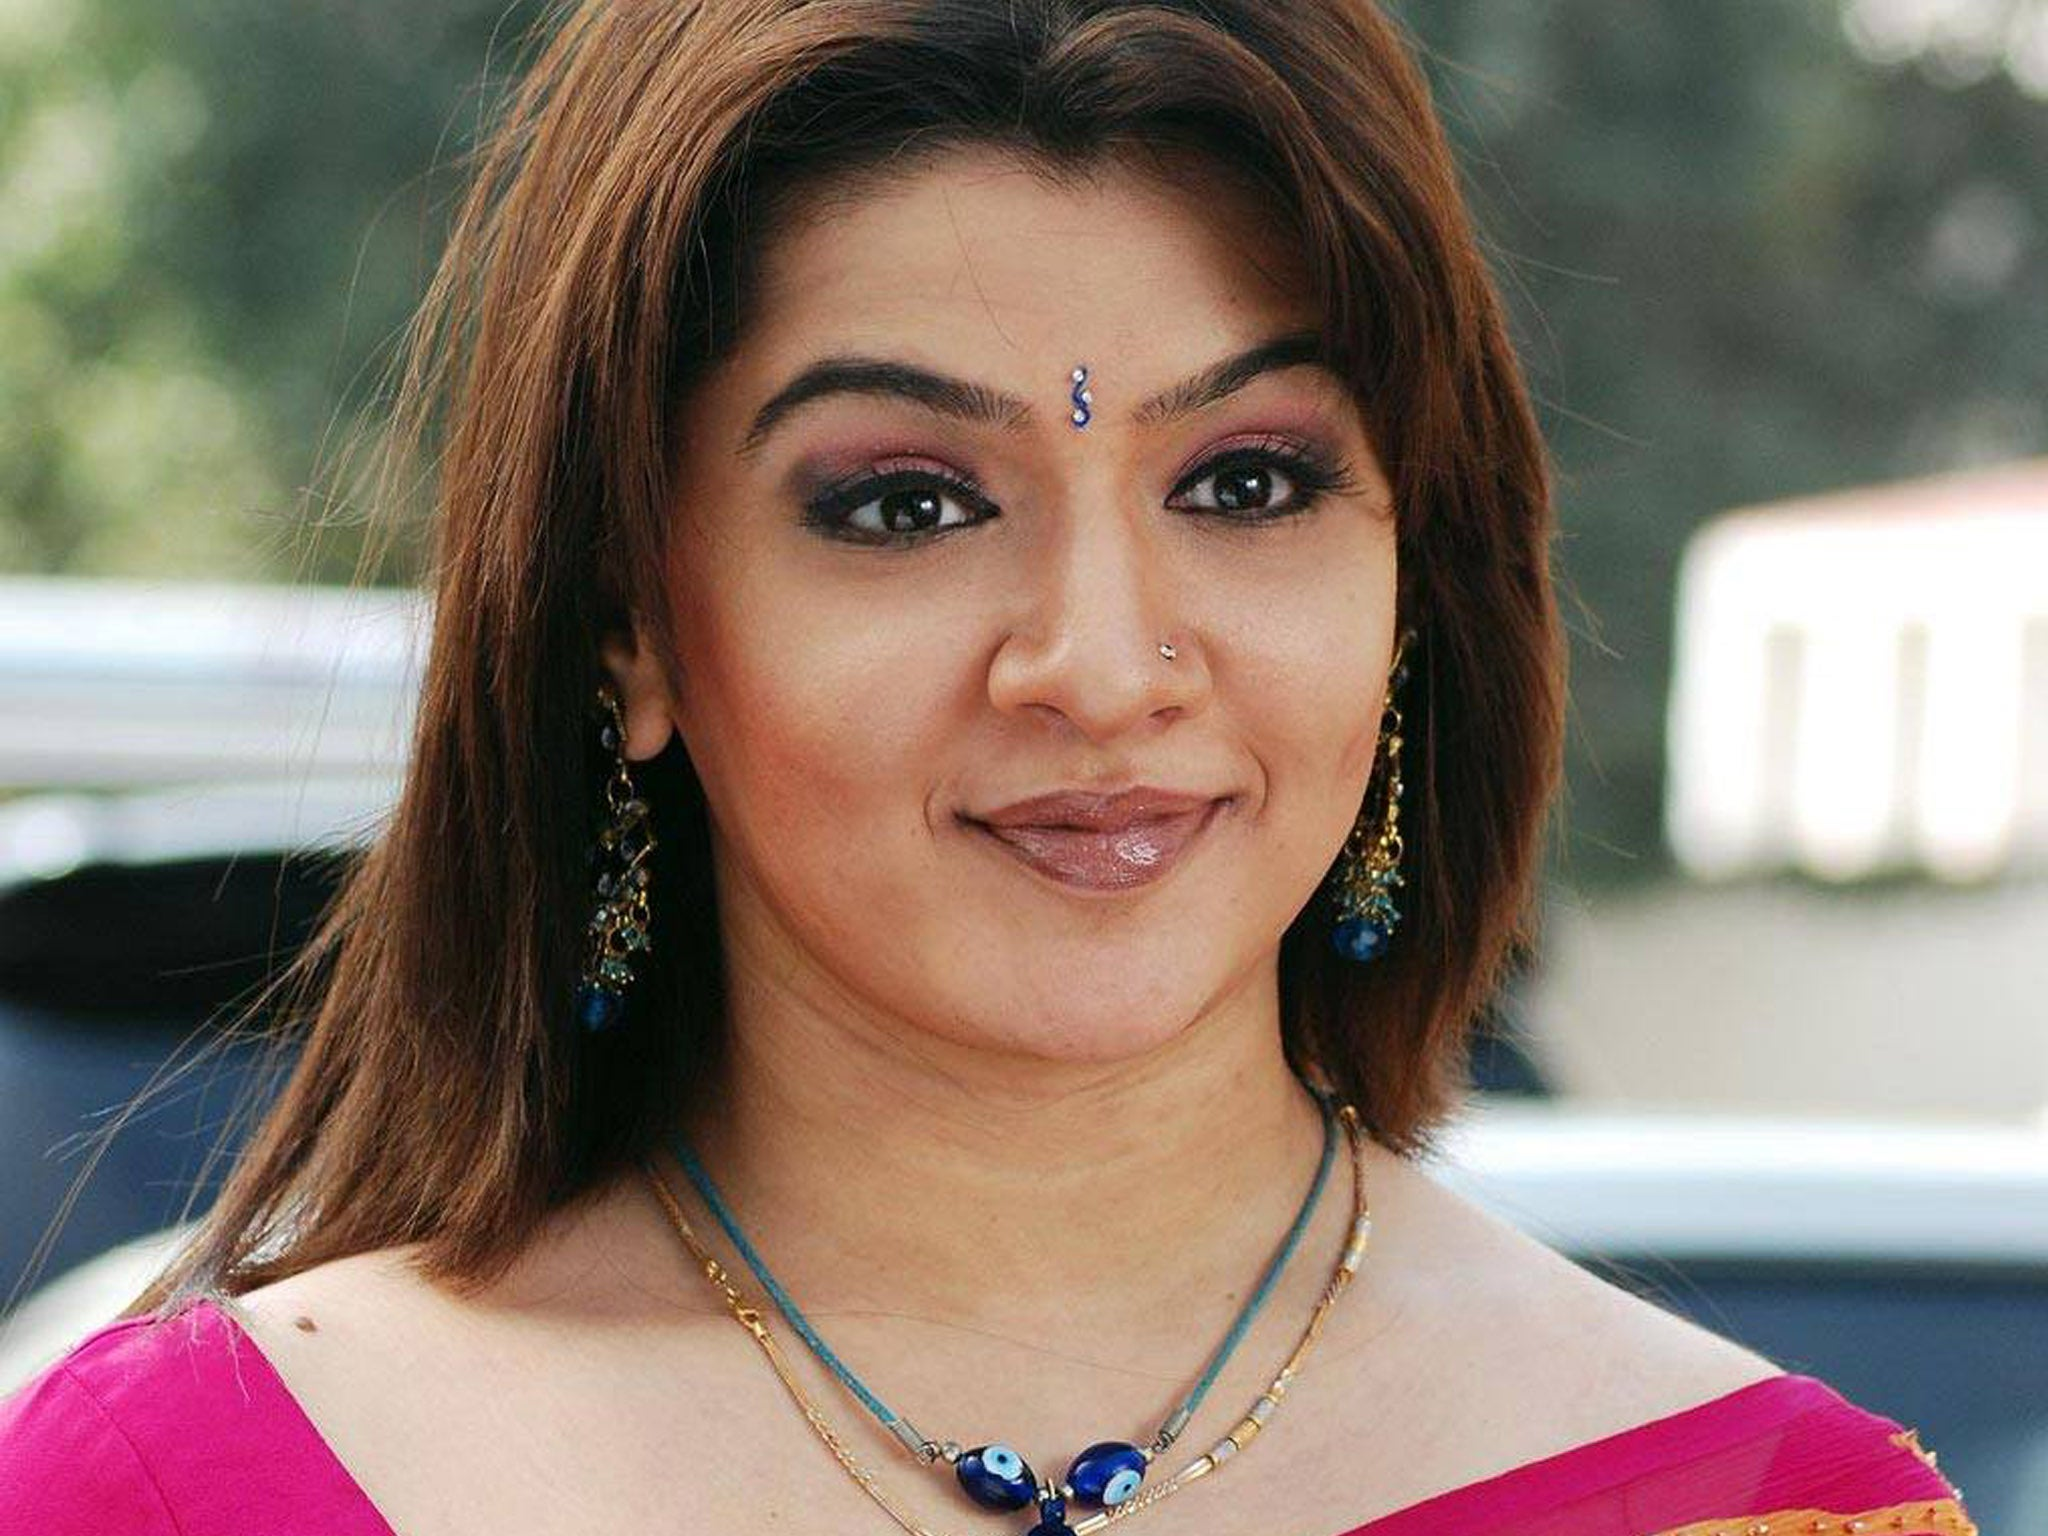 aarthi agarwal, bollywood actress, dies aged 31 of a heart attack